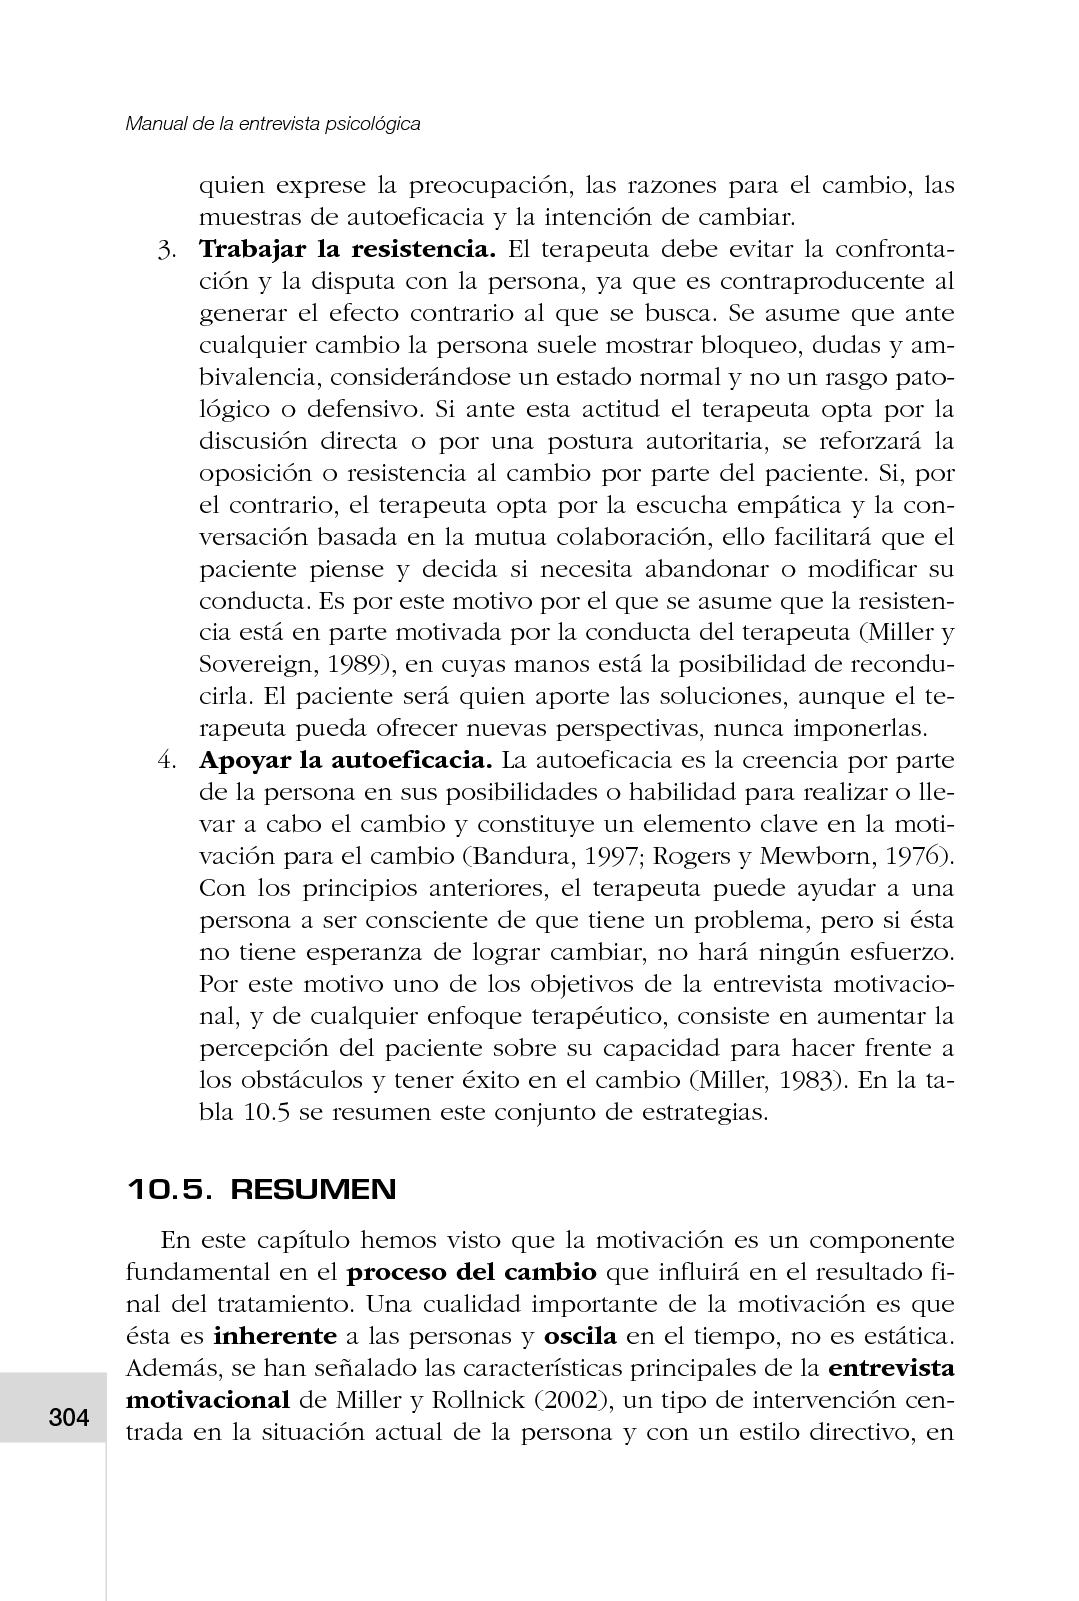 Page 302